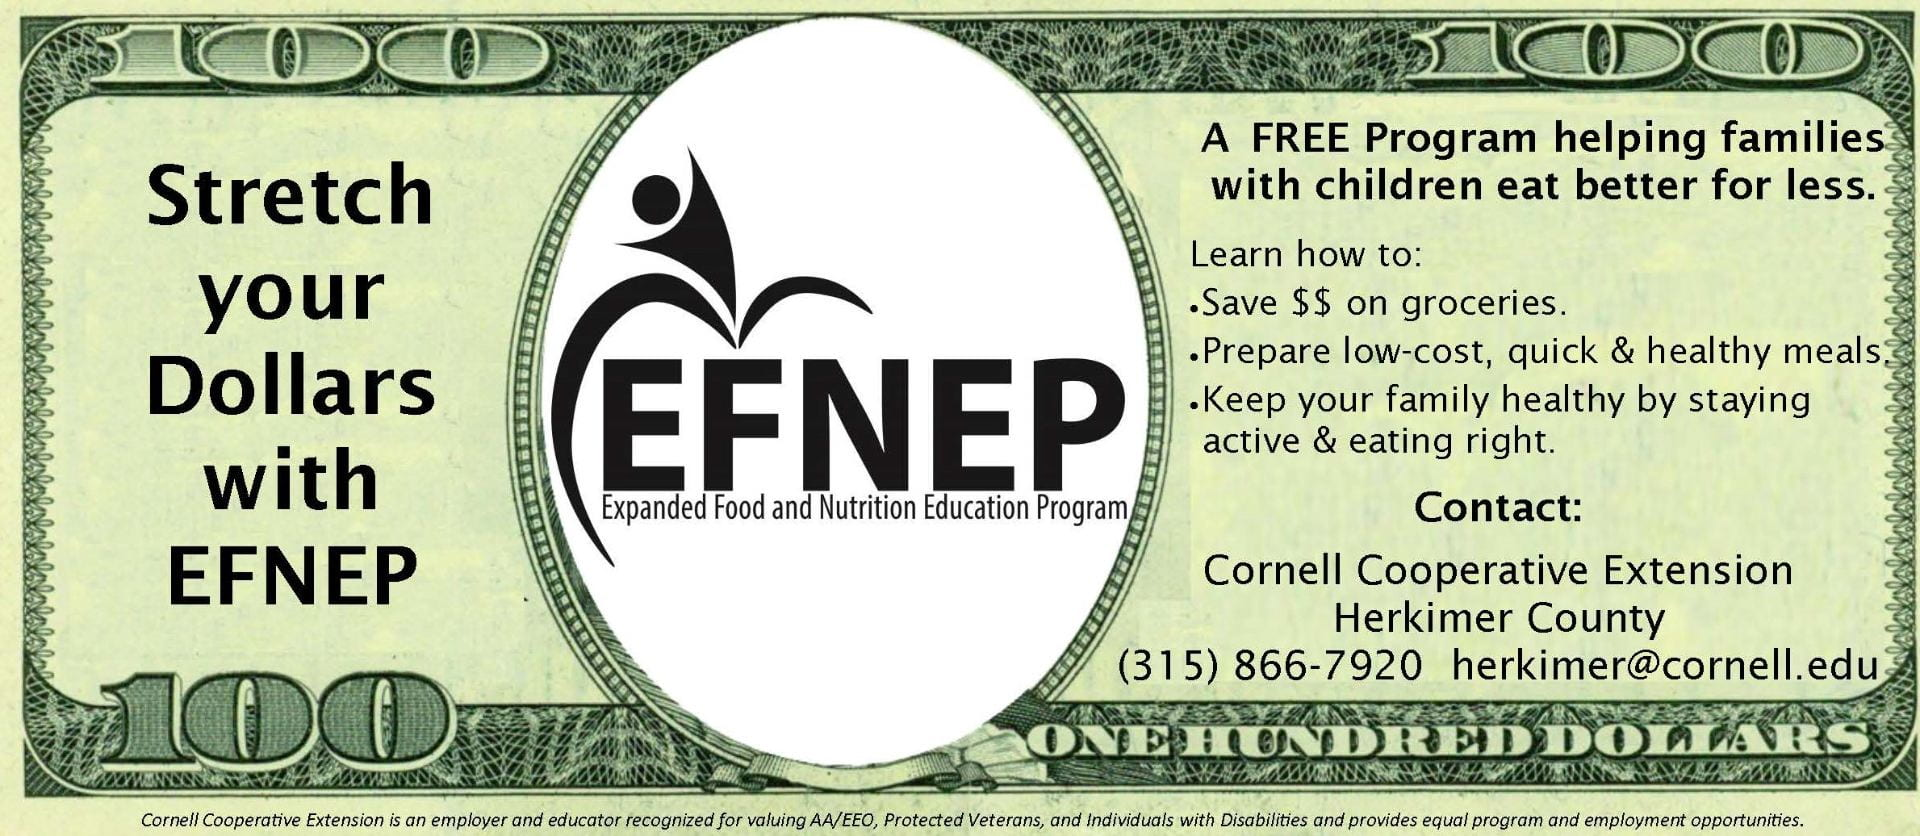 Stretch your dollars with EFNEP promo, made to look similar to a 100 dollar bill with the EFNEP logo in place of the face